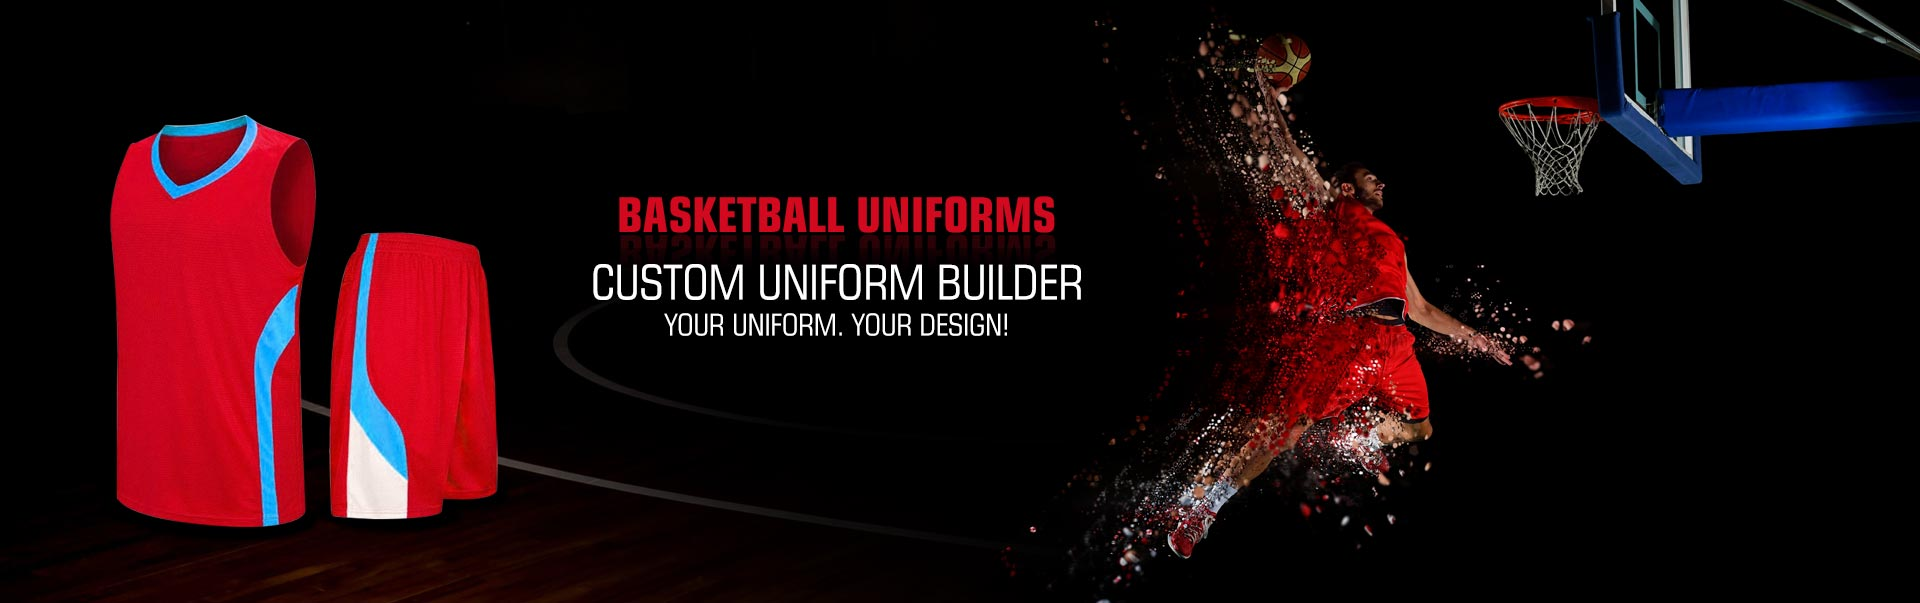 Basketball Uniforms Wholesaler, Suppliers in Ireland